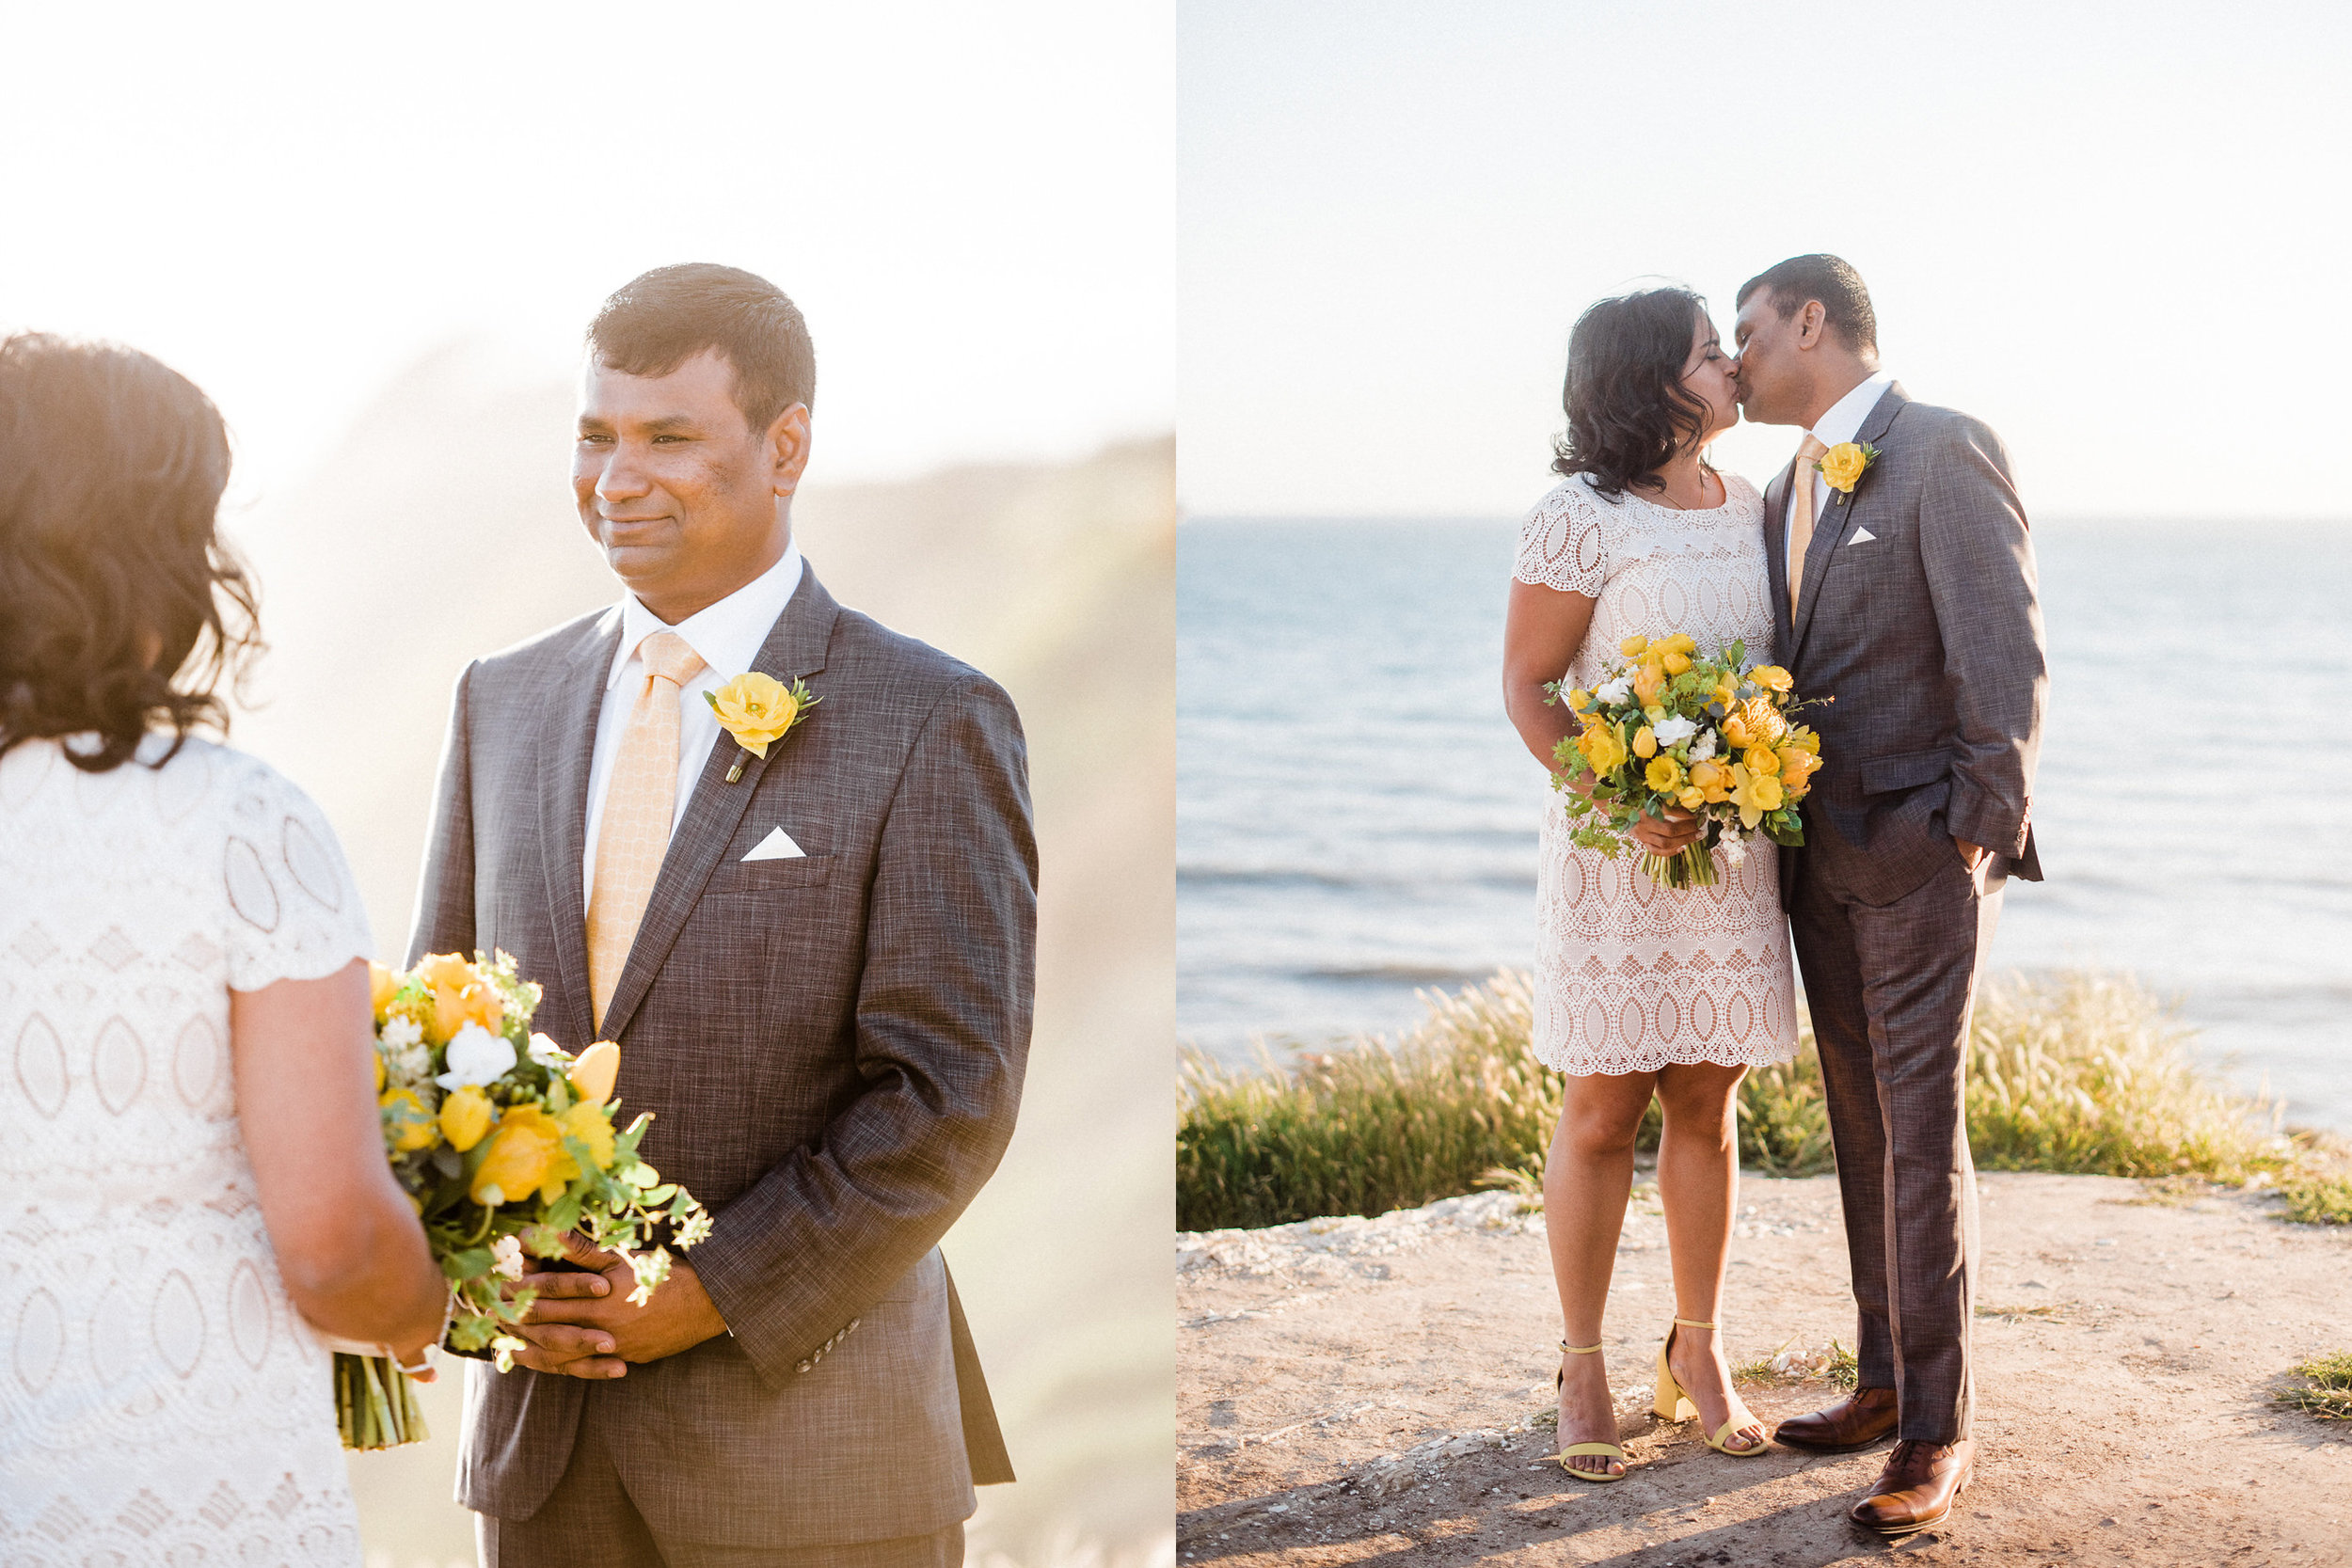 santa-barbara-elopement-elope-wedding-planner-planning-coordinator-day-of-ellwood-bluffs-ocean-view-yellow (9).jpg